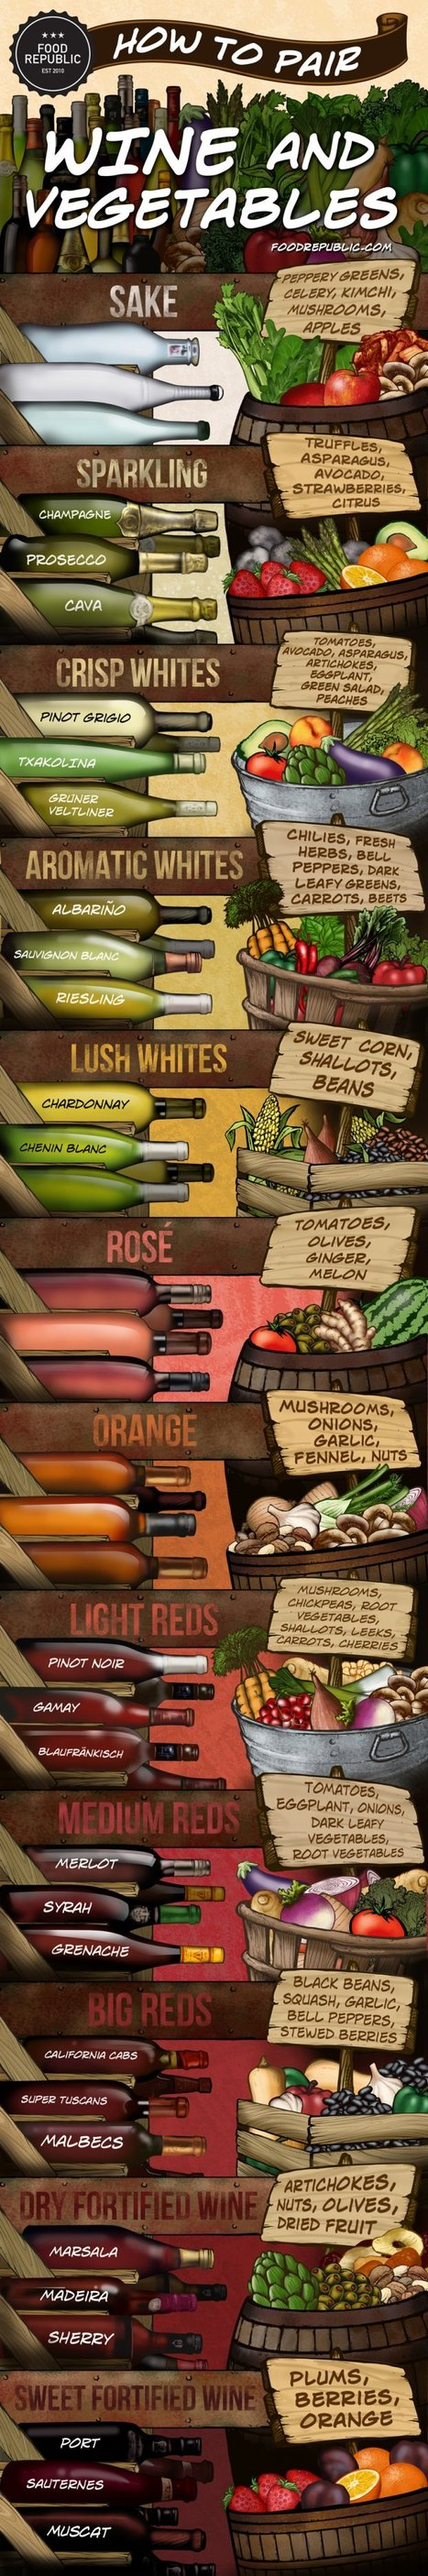 Infographic: How To Pair Wine And Vegetables | IN2 Focus Media | Scoop.it